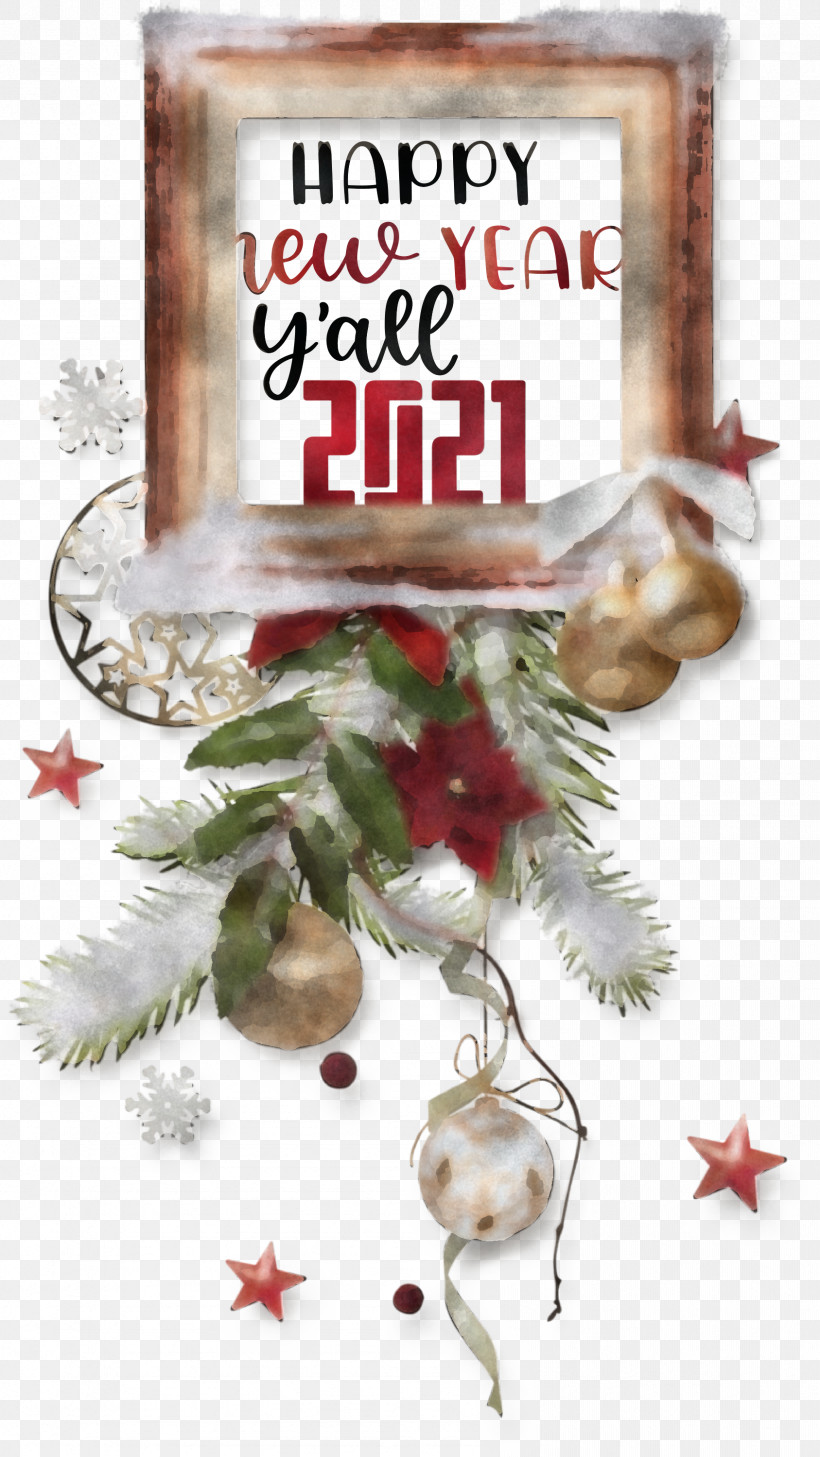 2021 Happy New Year 2021 New Year 2021 Wishes, PNG, 1687x2999px, 2021 Happy New Year, 2021 New Year, 2021 Wishes, Christmas Day, Christmas Ornament Download Free